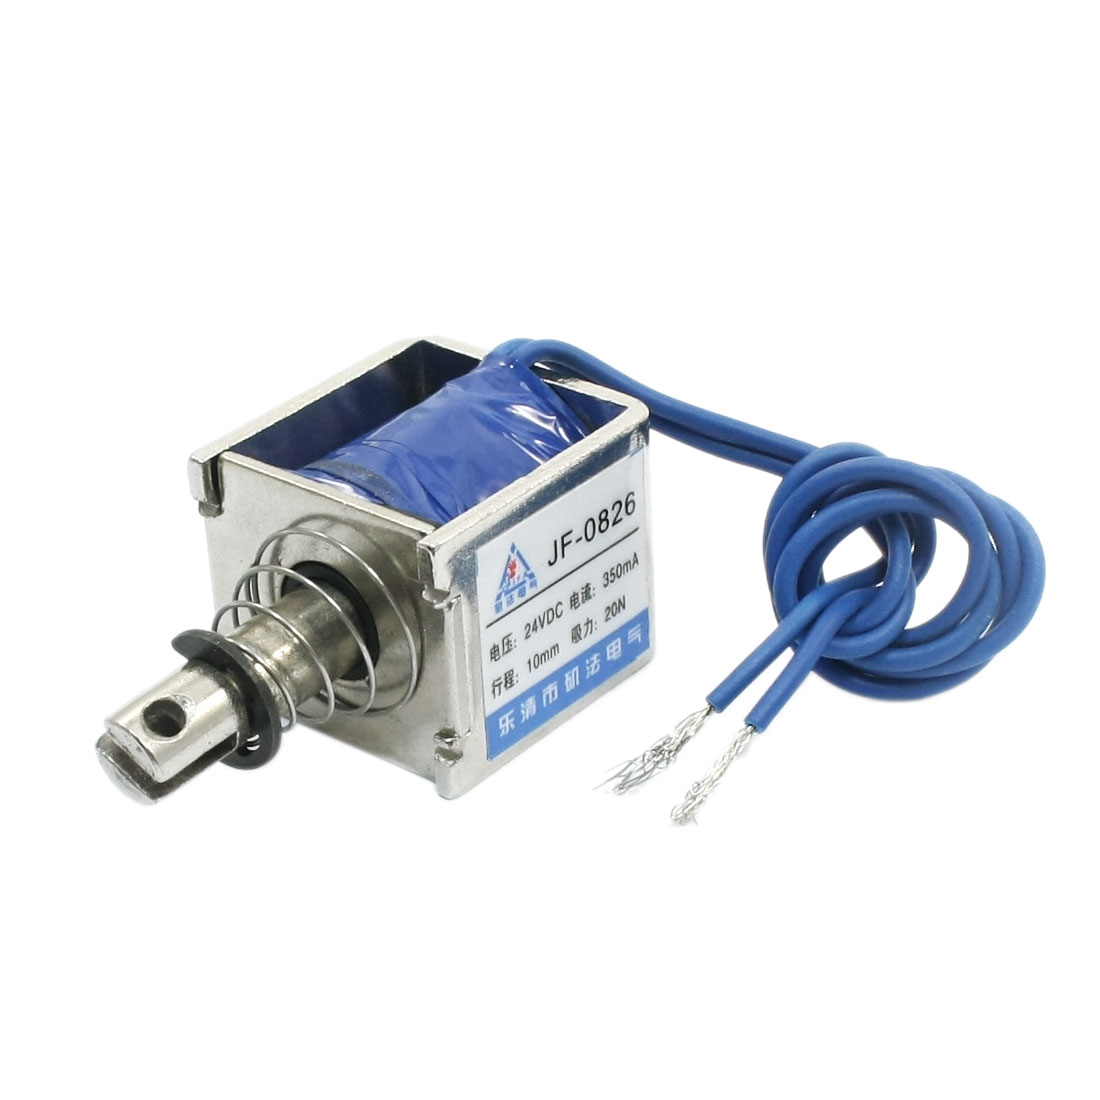 UXCELL Dc24v 20N Force 10Mm Actuator Plunger Return Linear Motion Open Frame Pull Solenoid Electromagnet